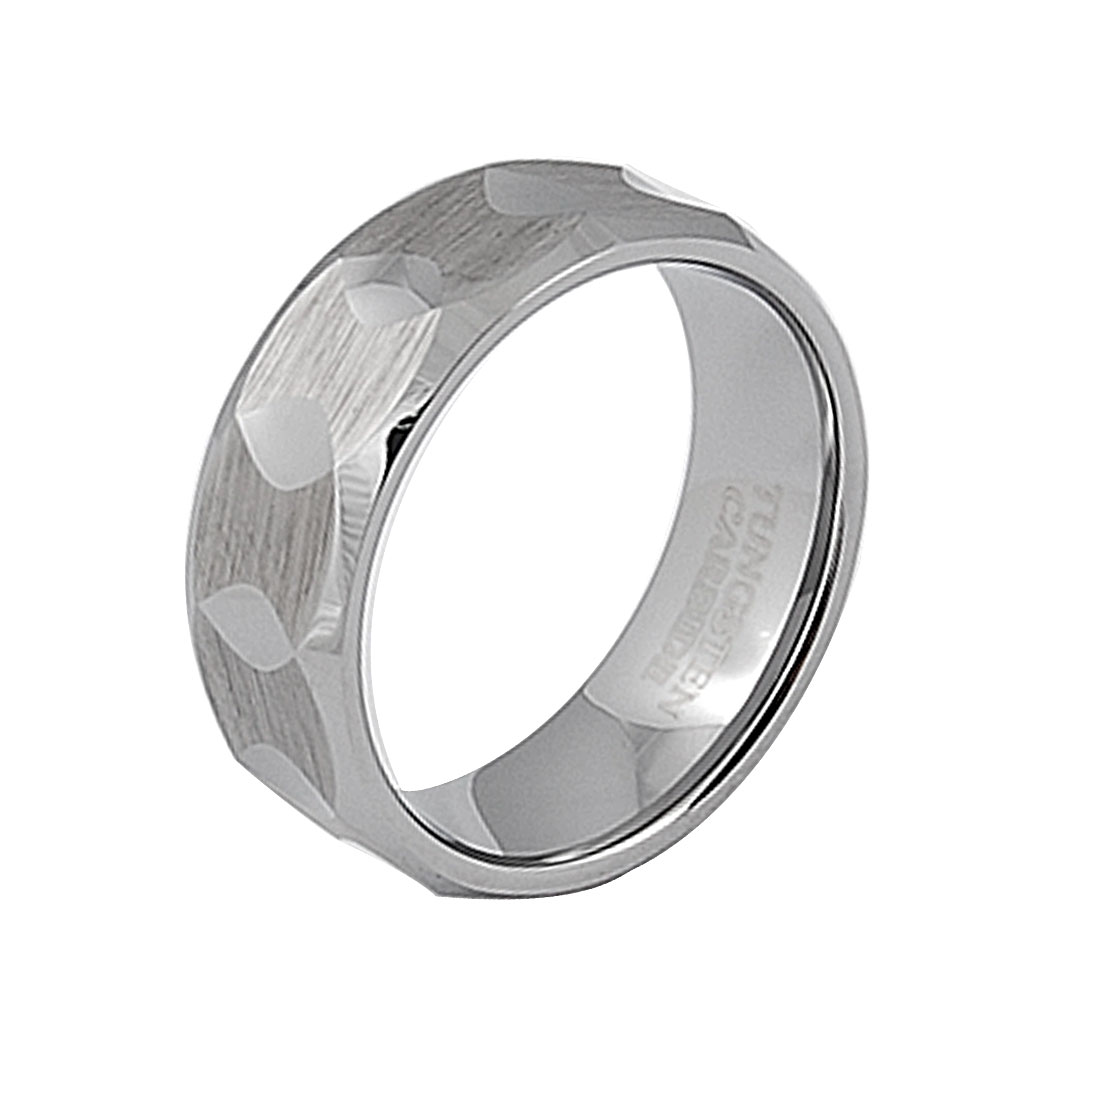 Unisex Tungsten Carbide Fashion Jewelry US 9 Finger Ring Gift